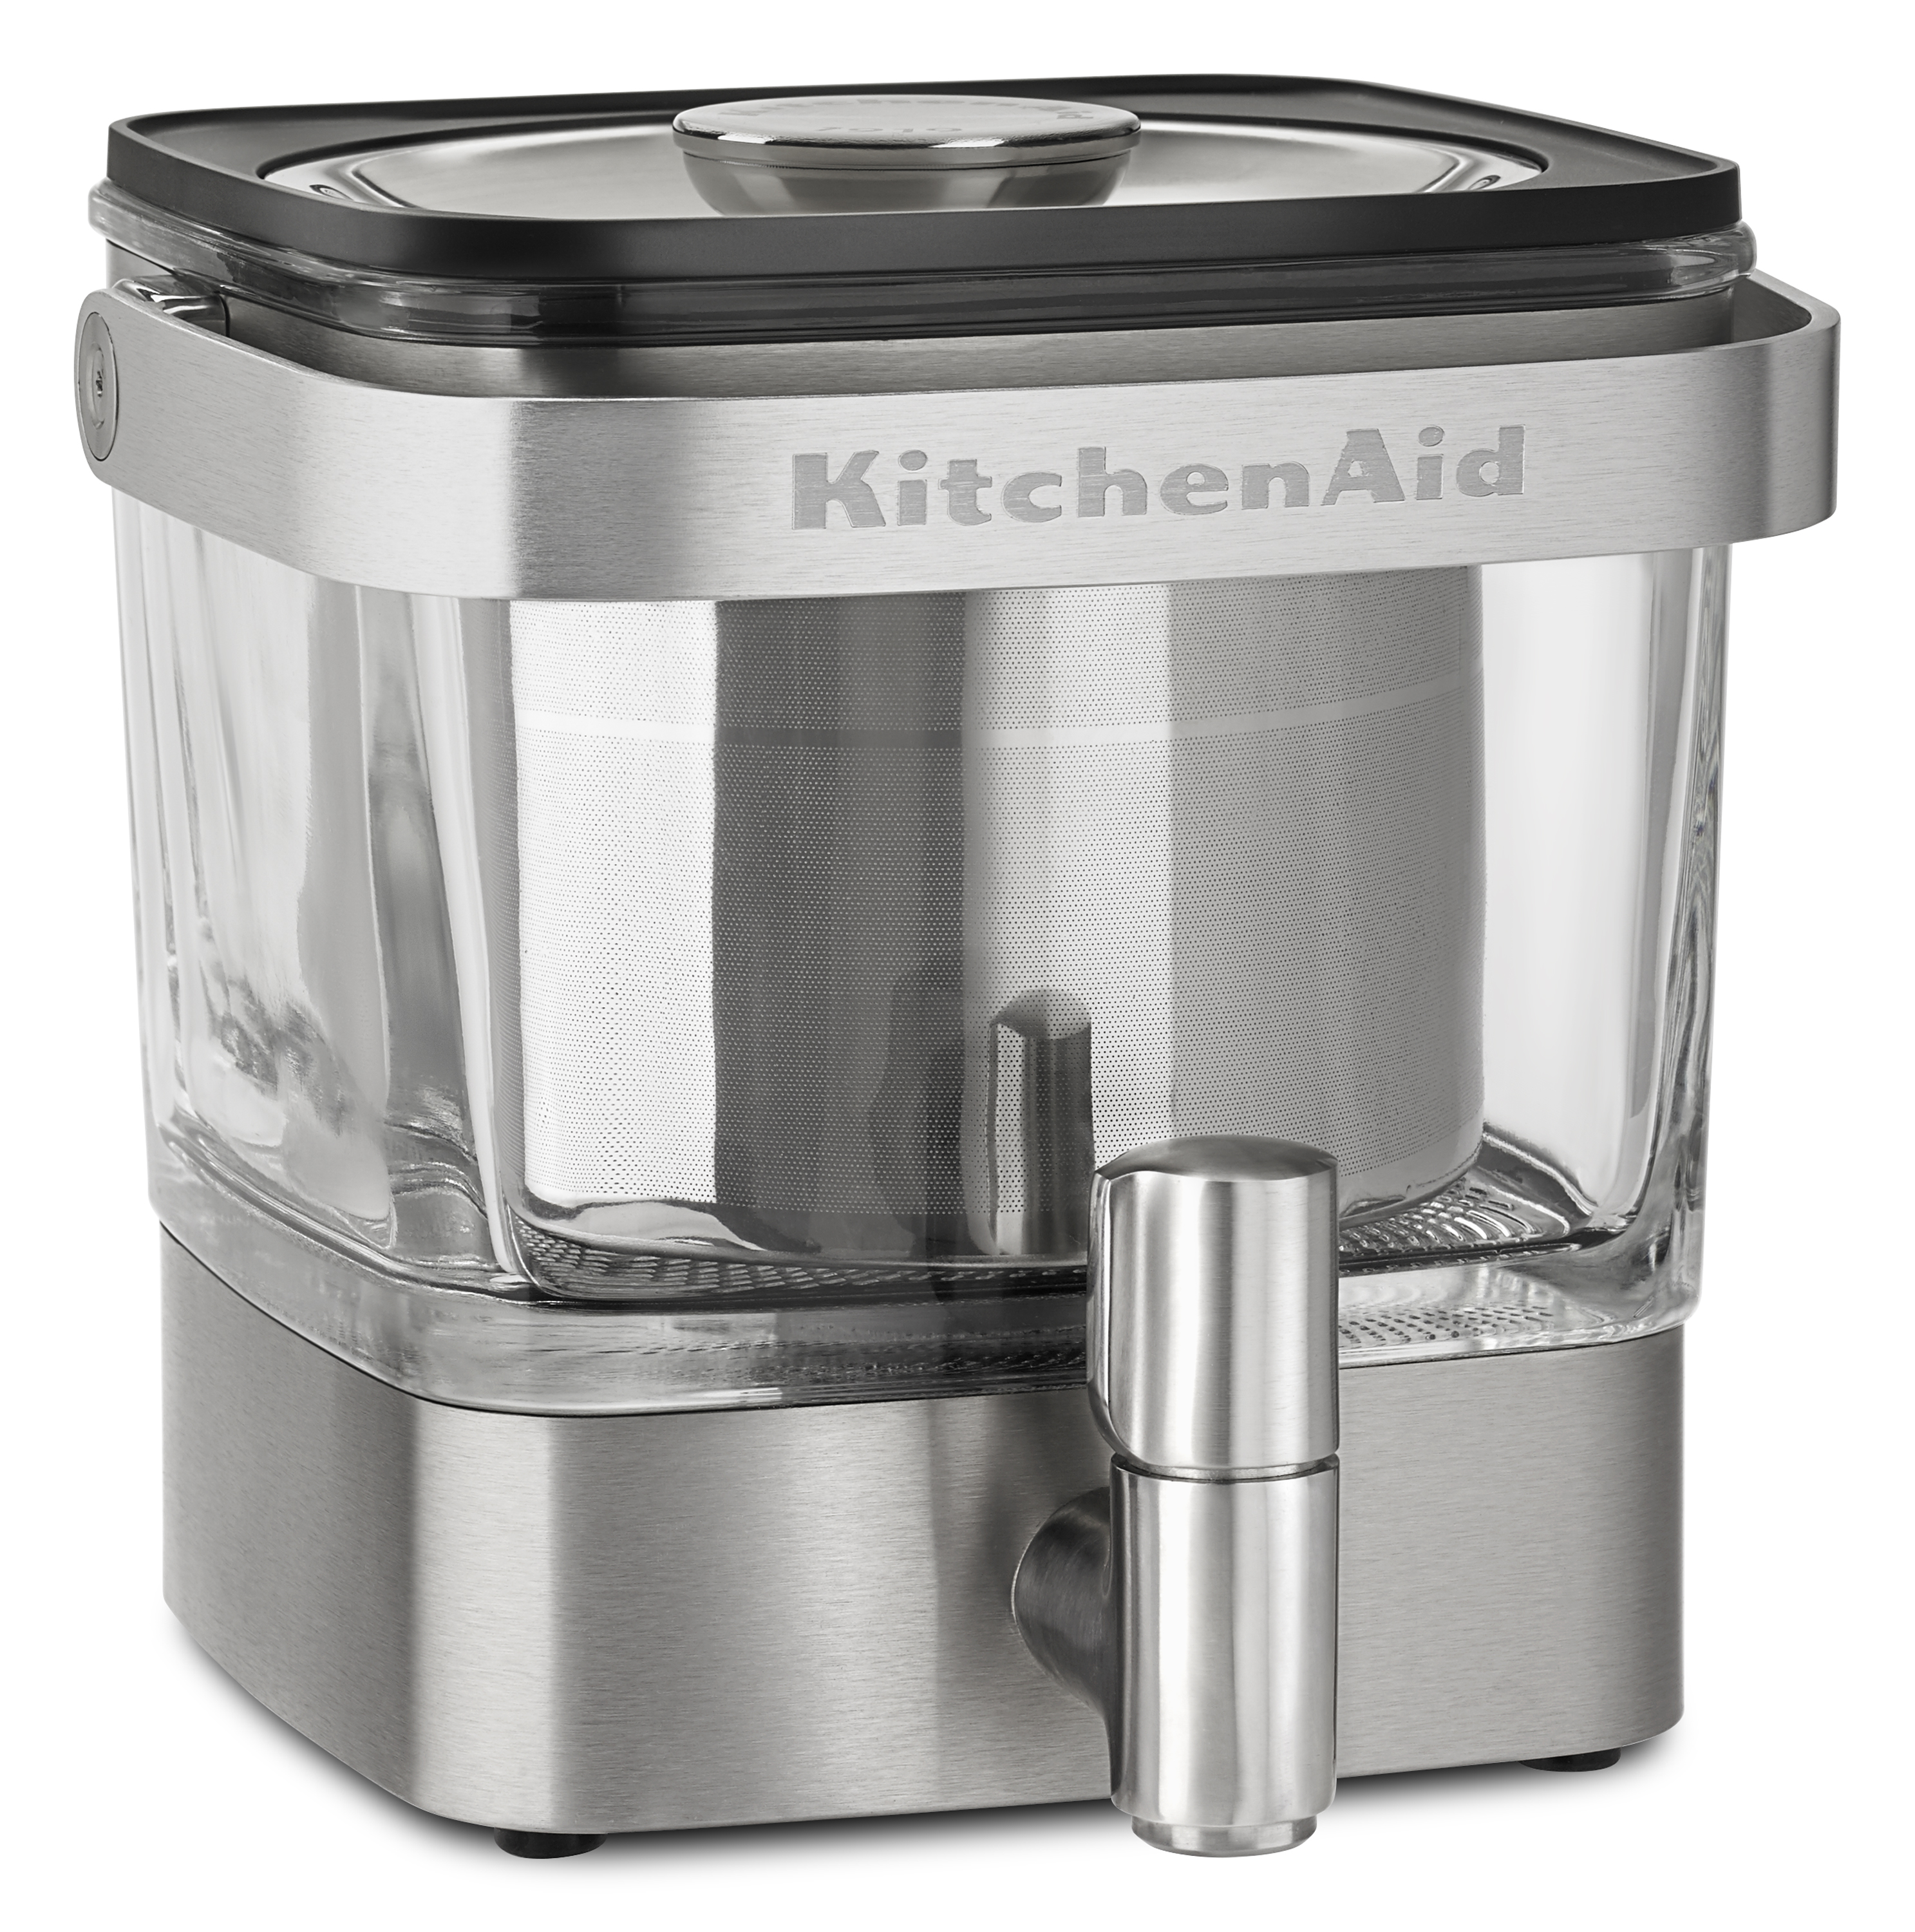 KitchenAid® Cold Brew Coffee Maker Brushed Stainless Steel (KCM4212SX)